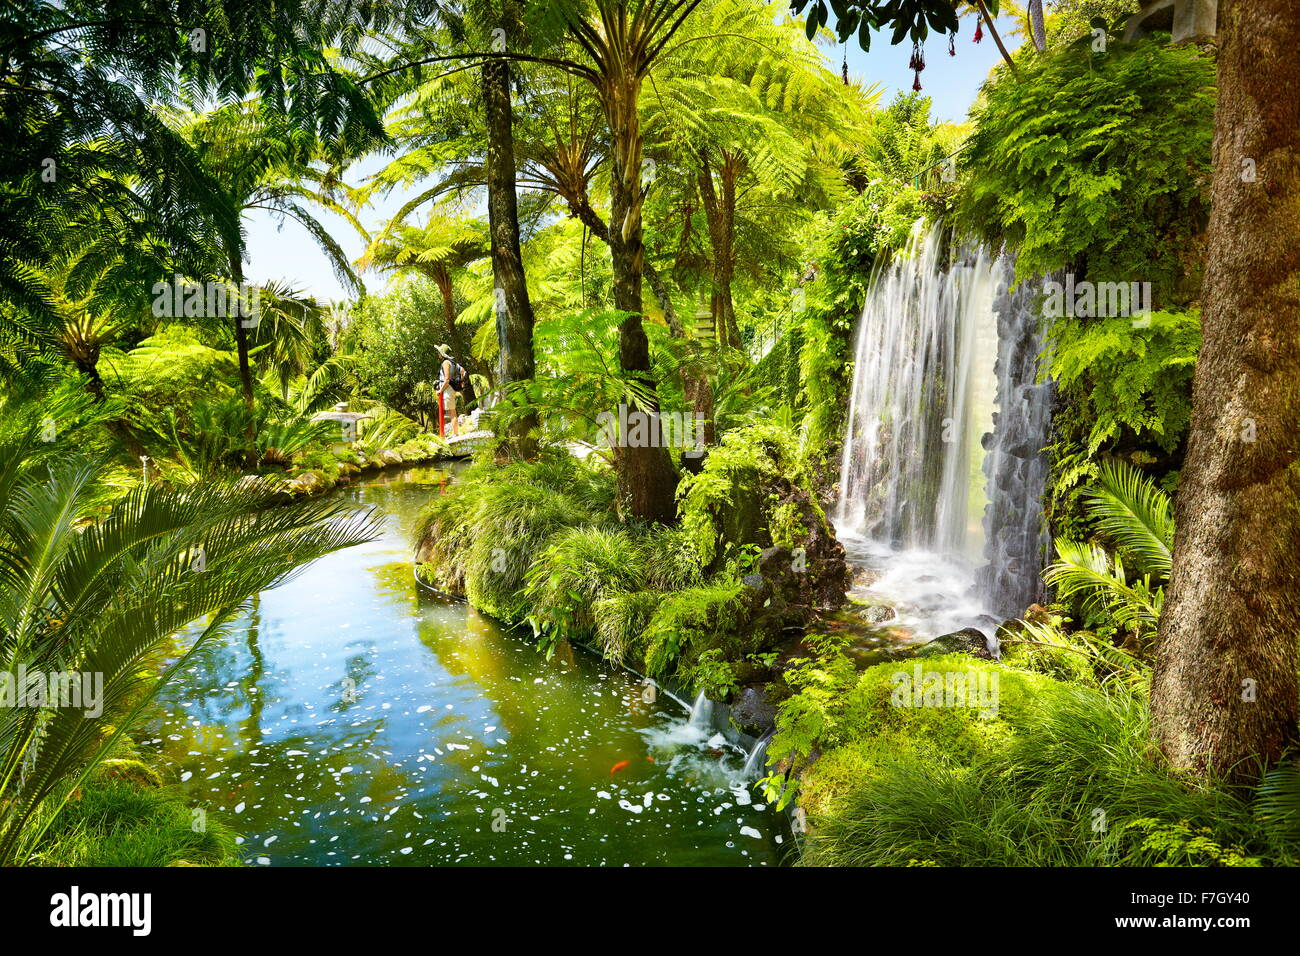 Monte Palace Tropical Garden (Japanese garden) - Funchal, Monte, Madeira Island, Portugal Stock Photo